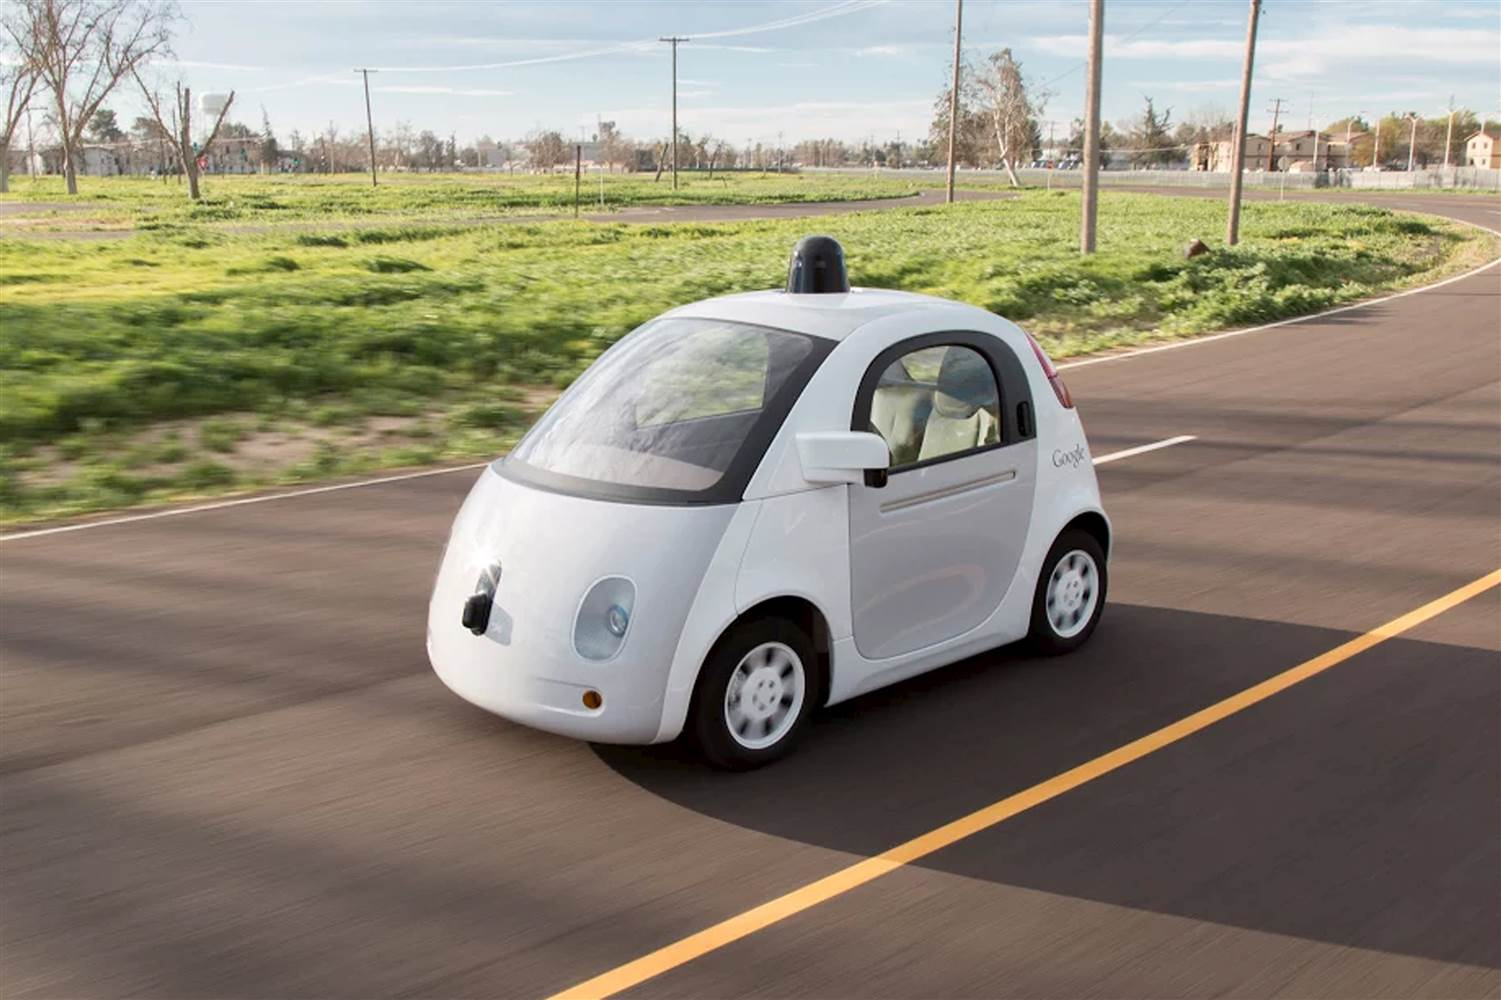 Public road testing for Google Self-Driving Car starting this summer in California